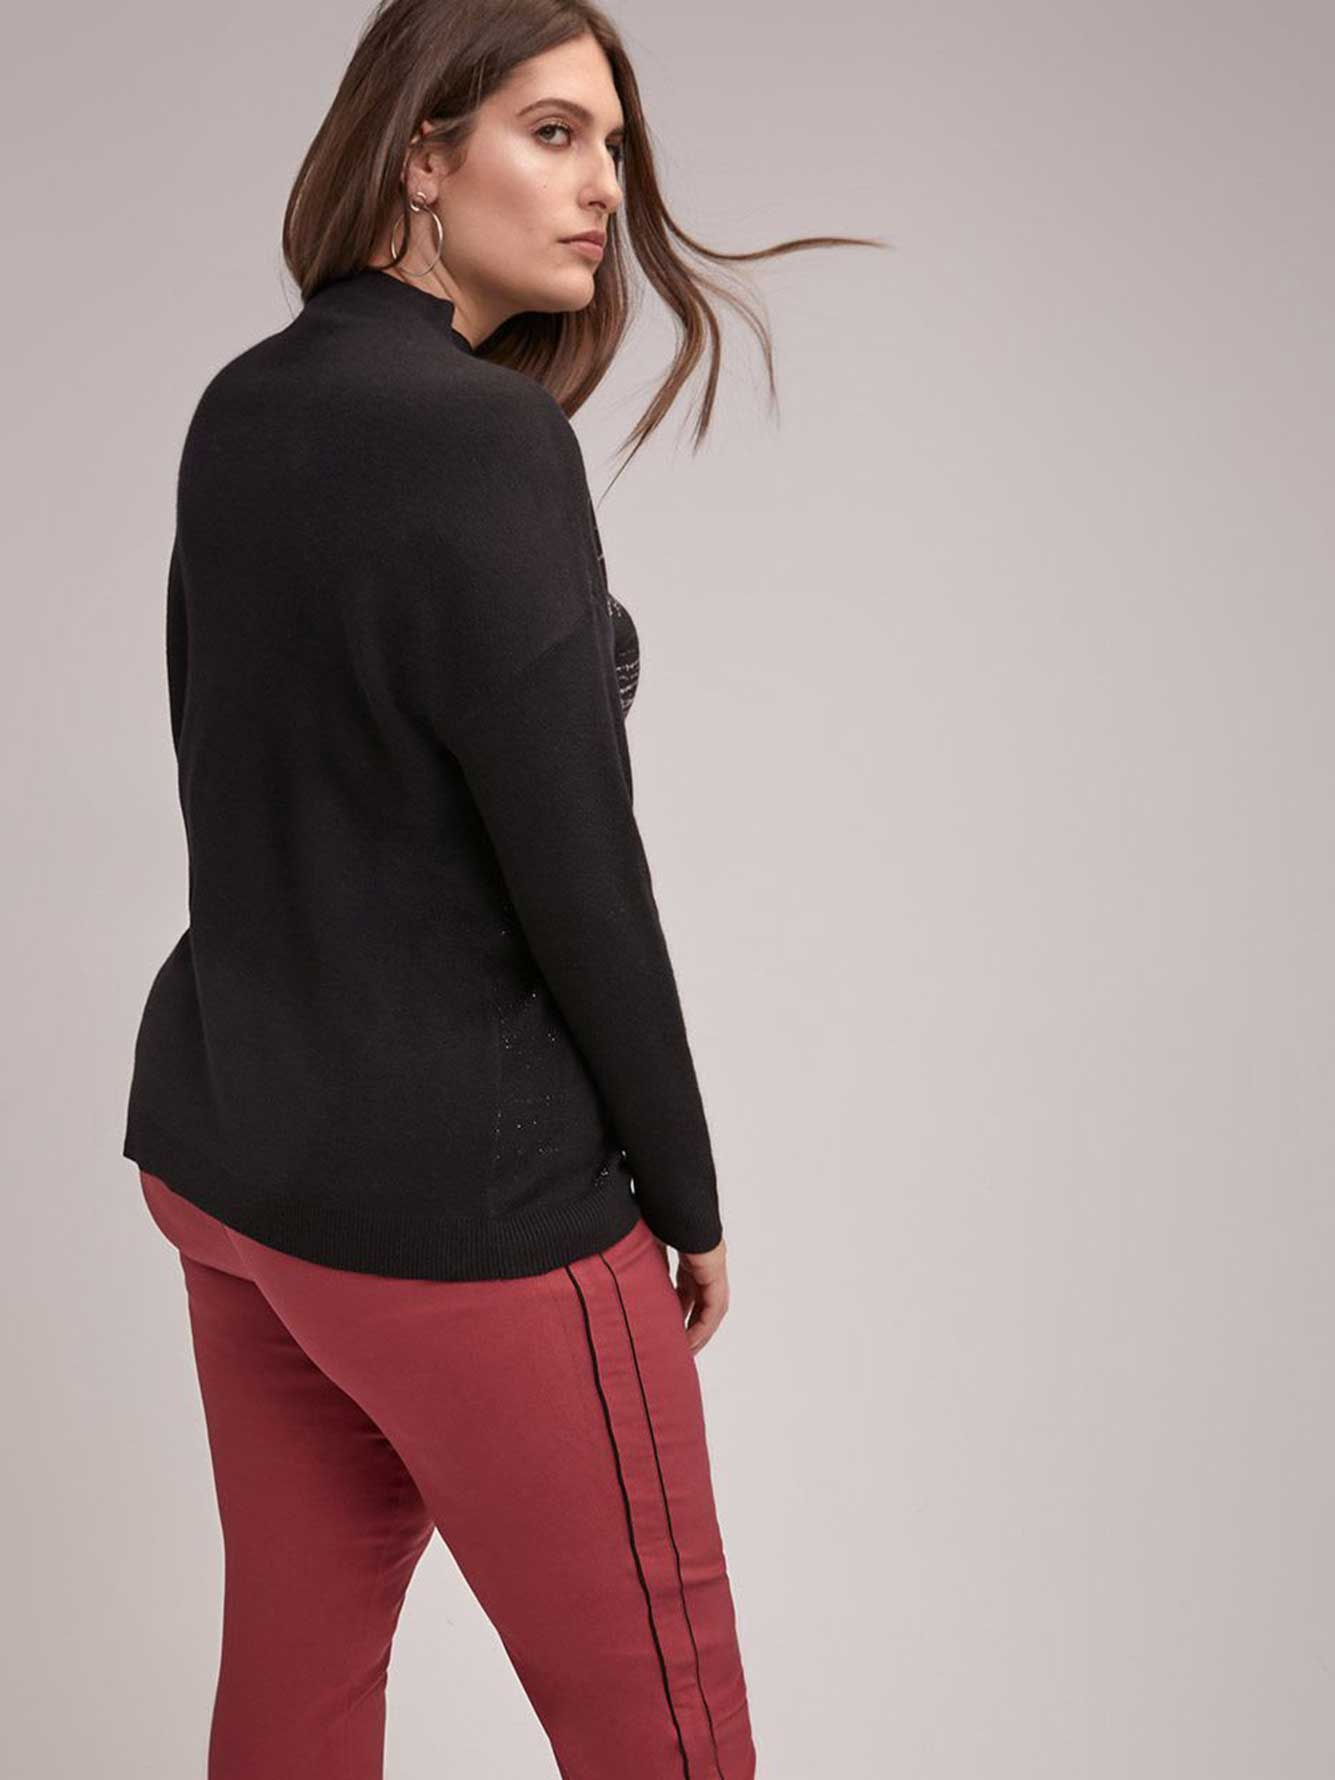 Long Sleeve Sweater with Lurex Detail - In Every Story